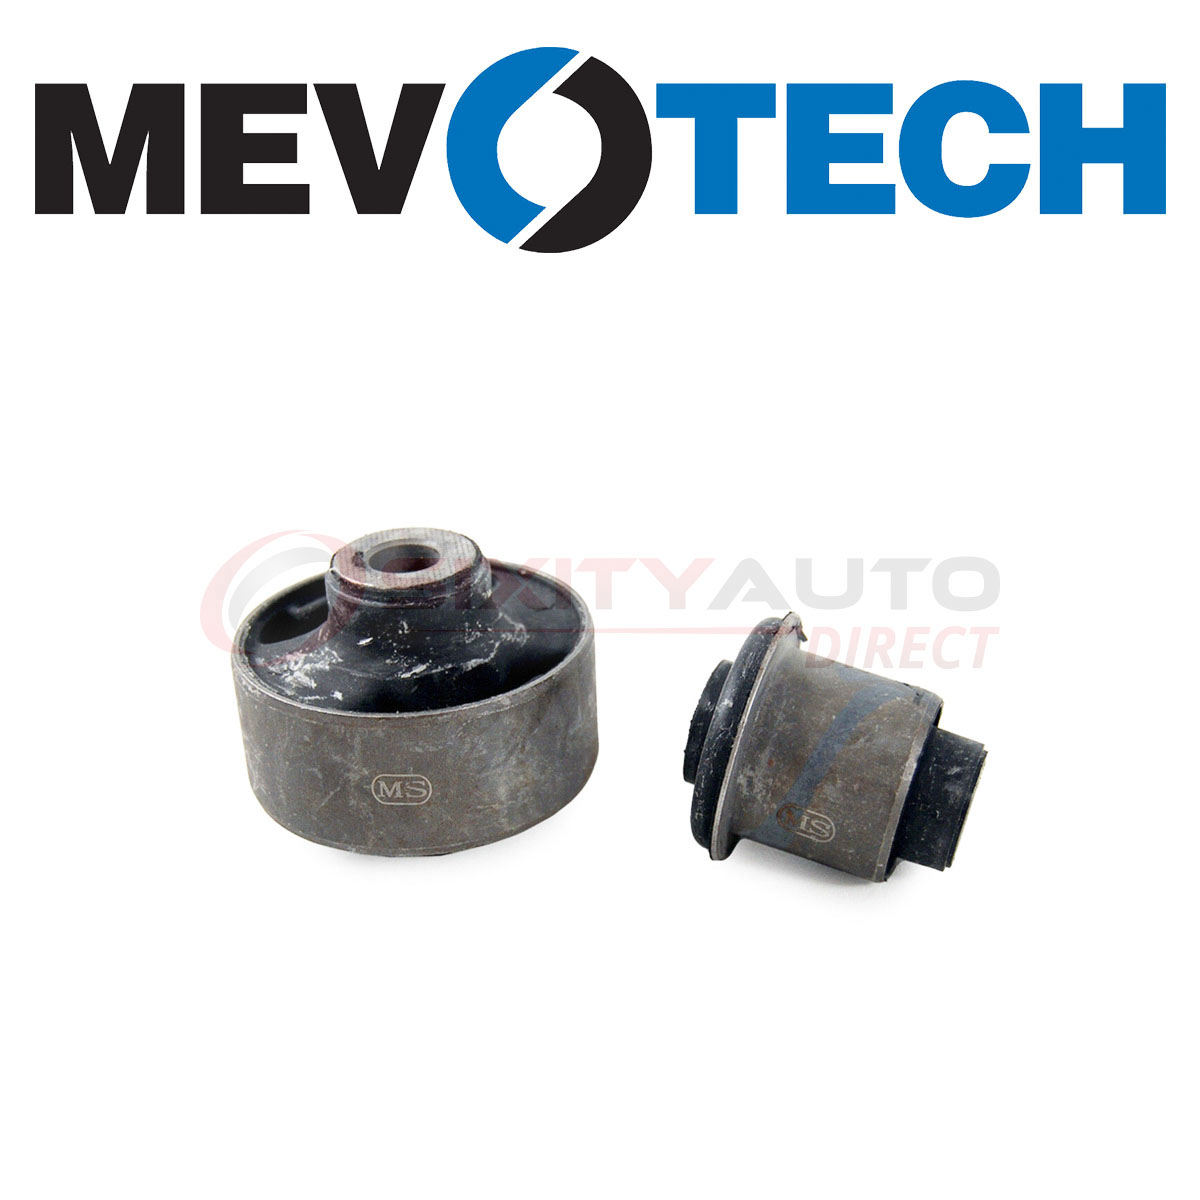 Mevotech Suspension Control Arm Bushing For 2004-2008